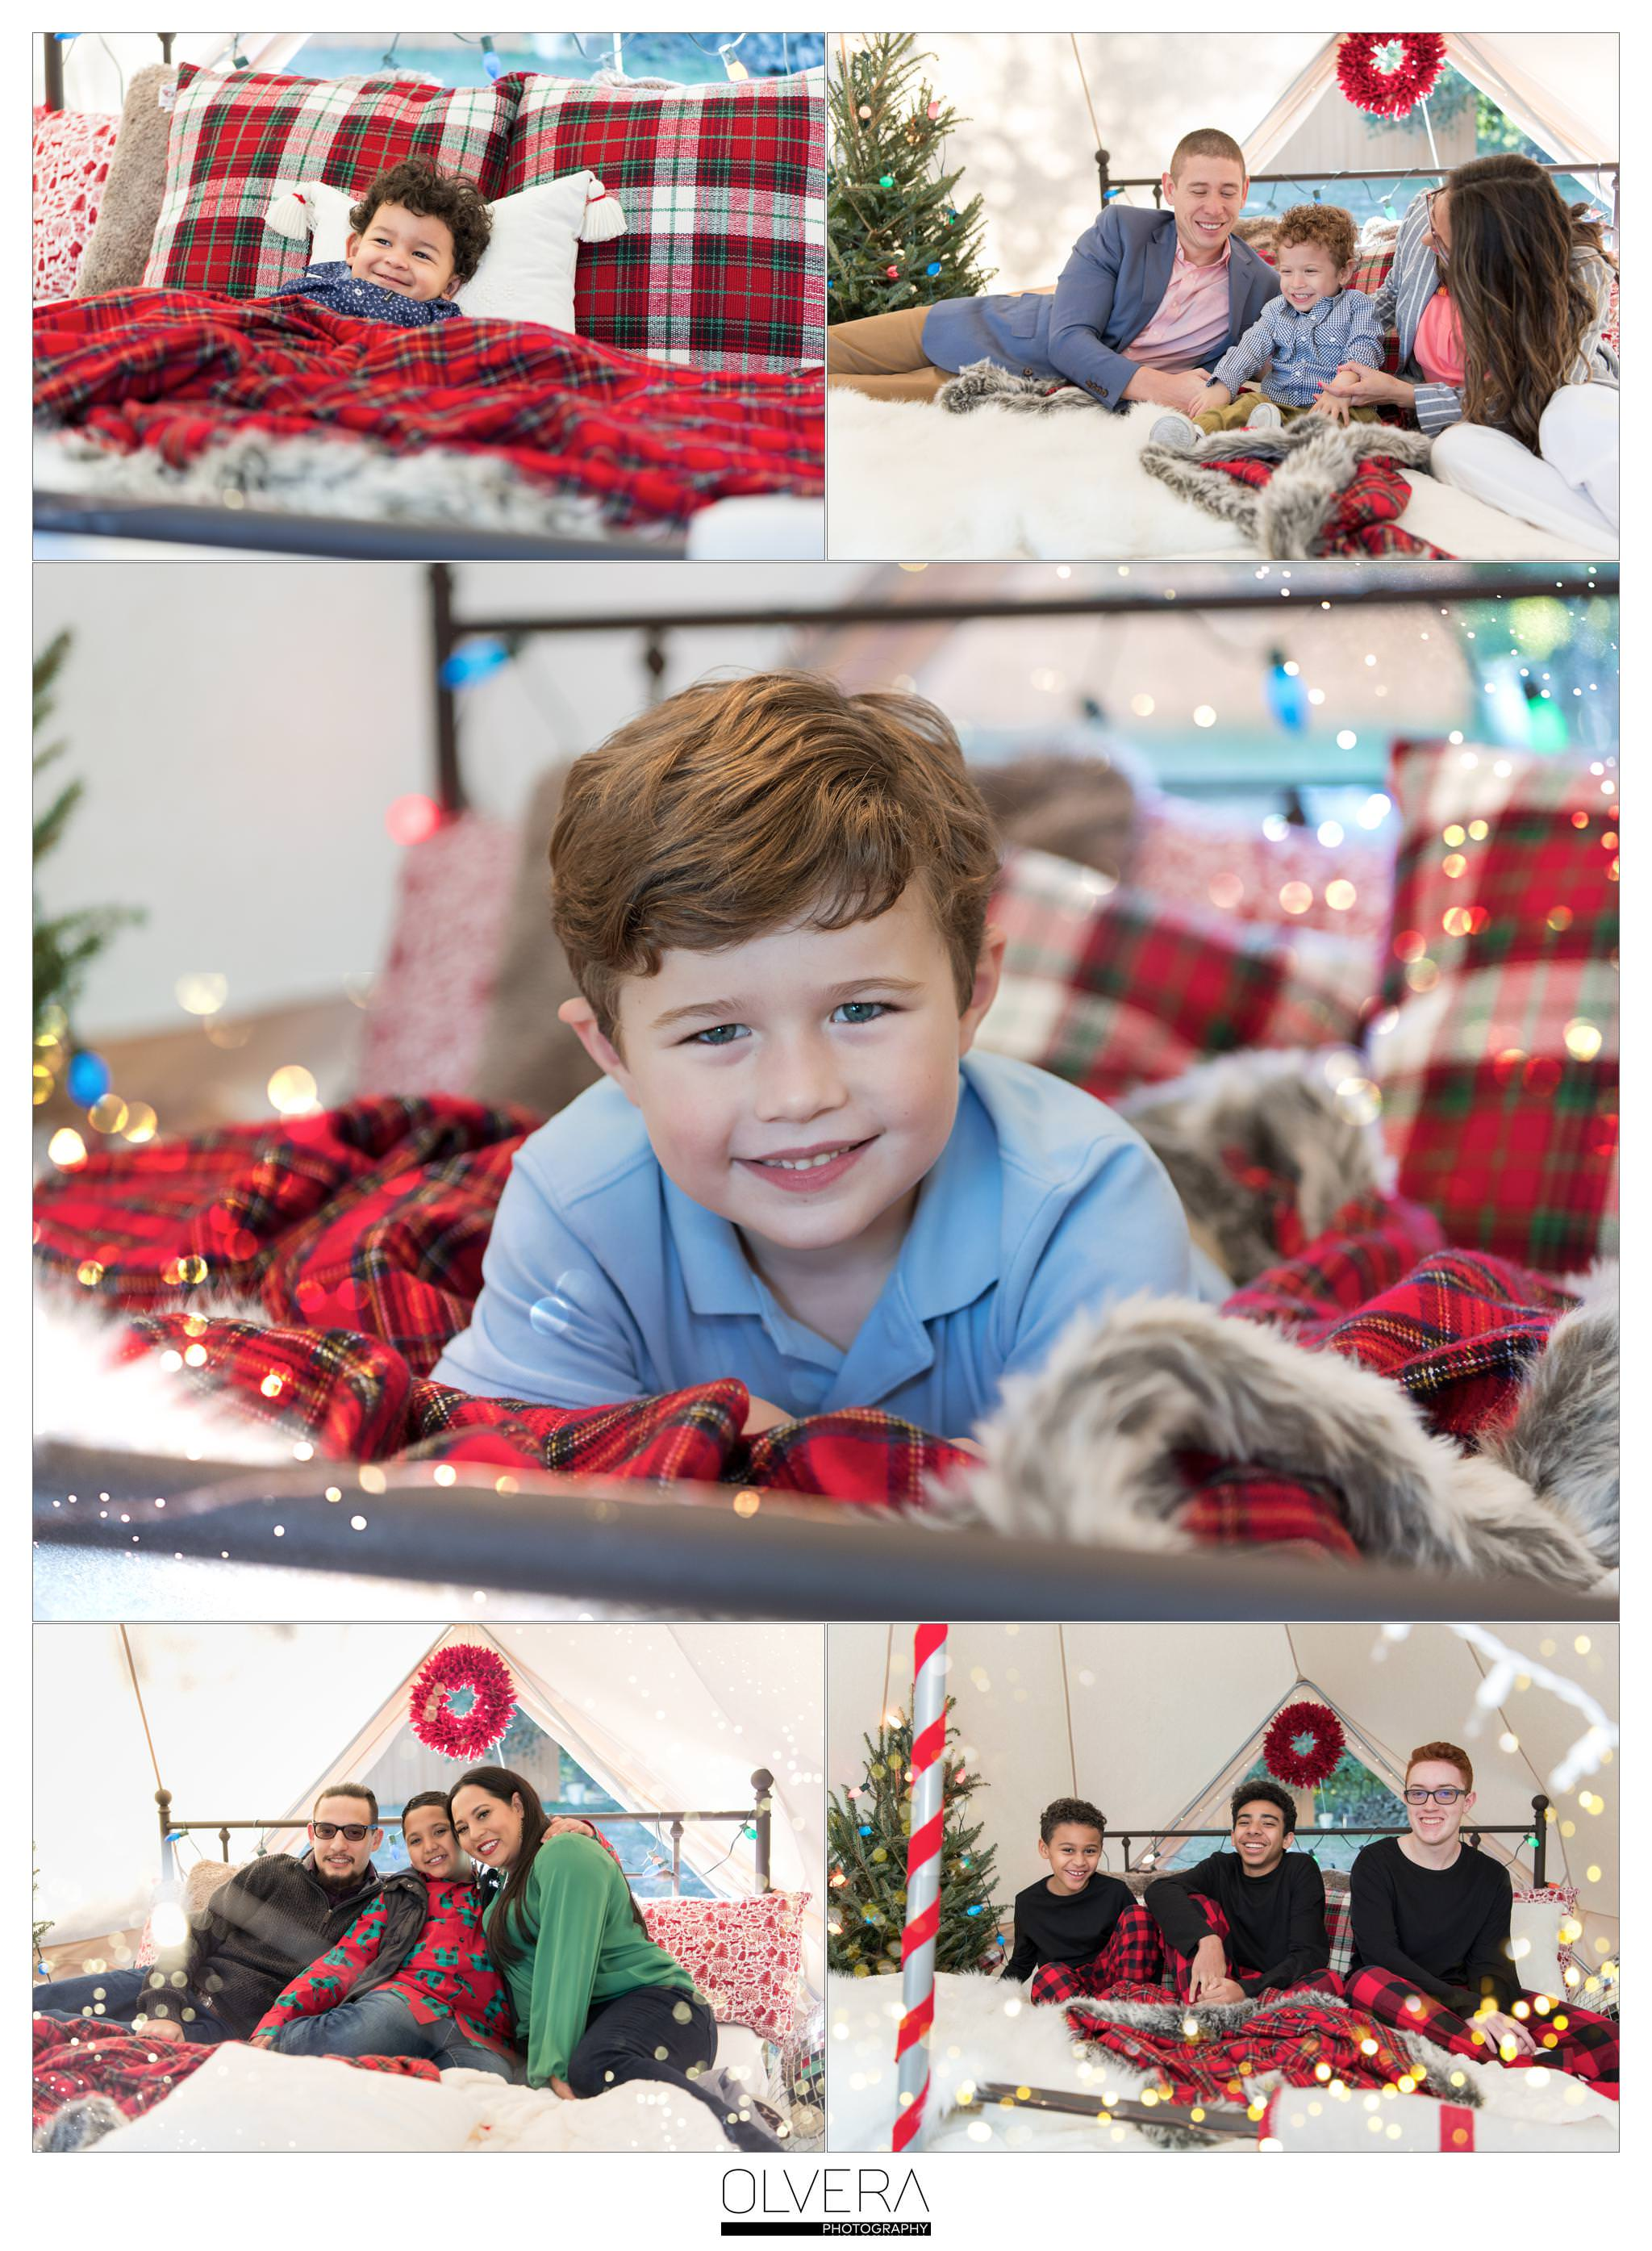 San-Antonio-Mini-Sessions_Christmas-Cabin-Tent_Olvera-Photography-6